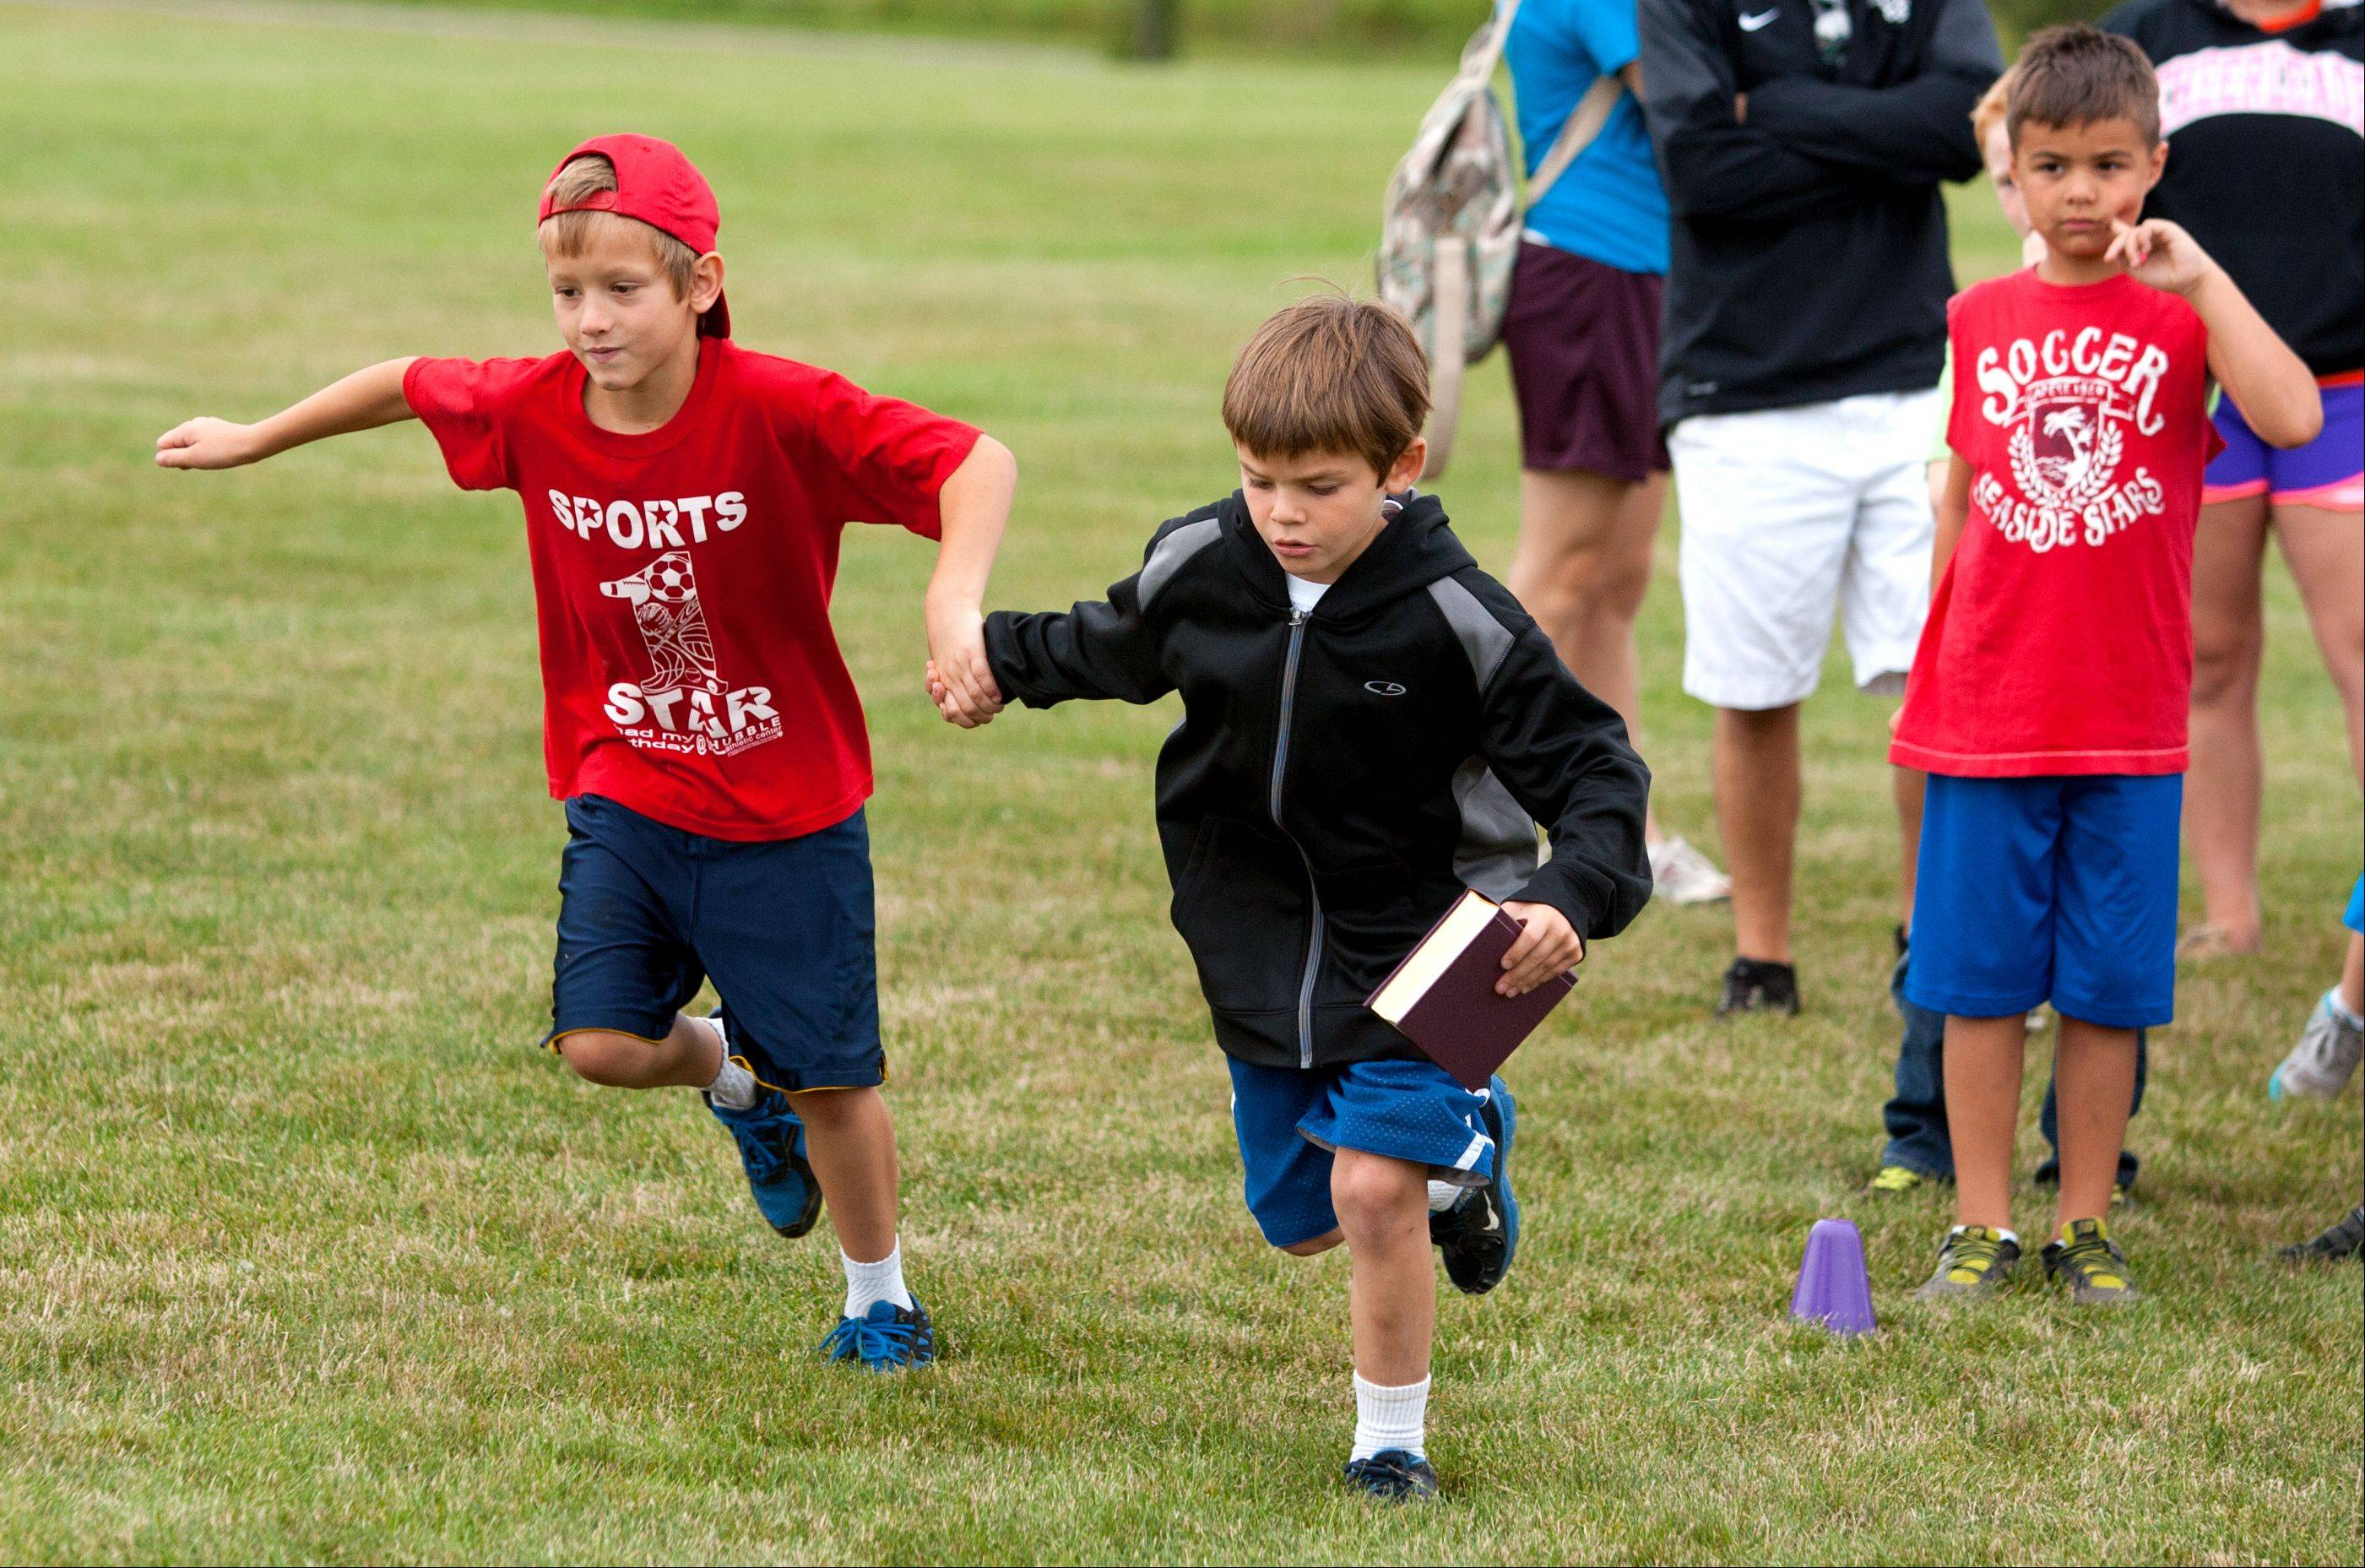 Noah Collingbourne, left, and Robert Barnhisel, right, both of the Winfield Park District, run in the precious cargo partner relay race during the fifth annual WAYS Salute to the Olympics, held at Carol Stream's Red Hawk Park.